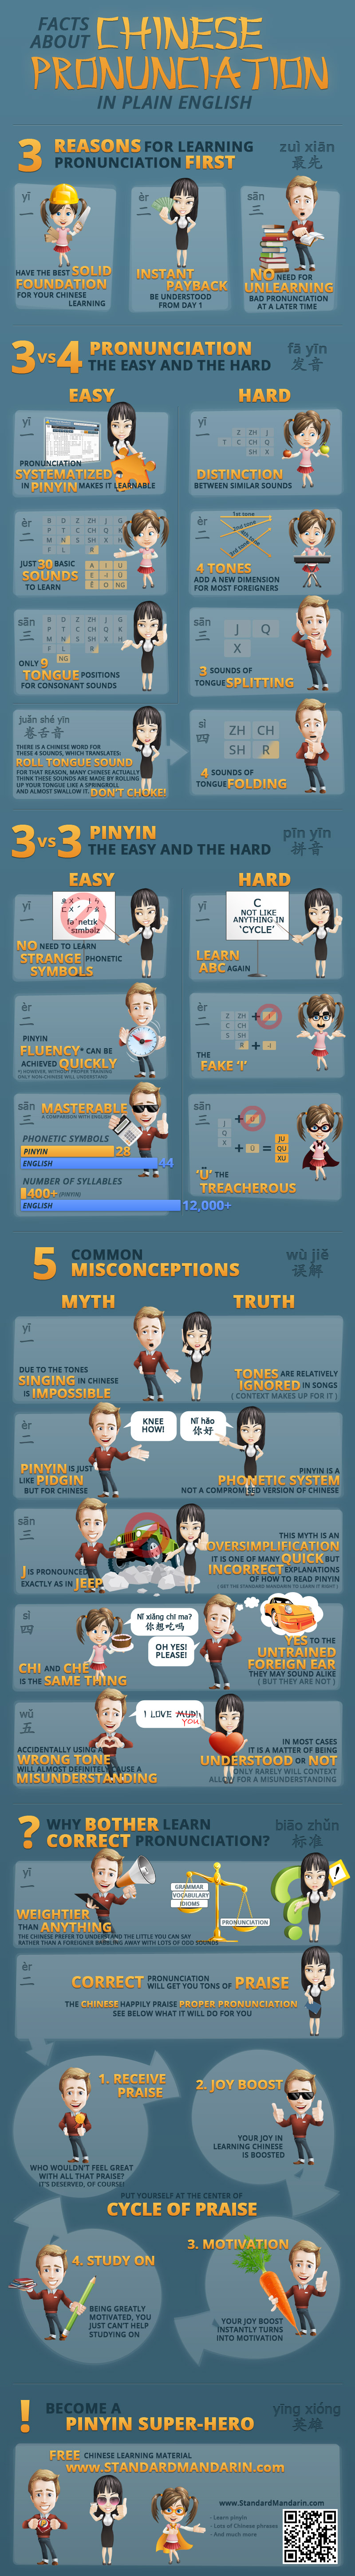 Facts About Chinese Pronunciation and Pinyin Infographic